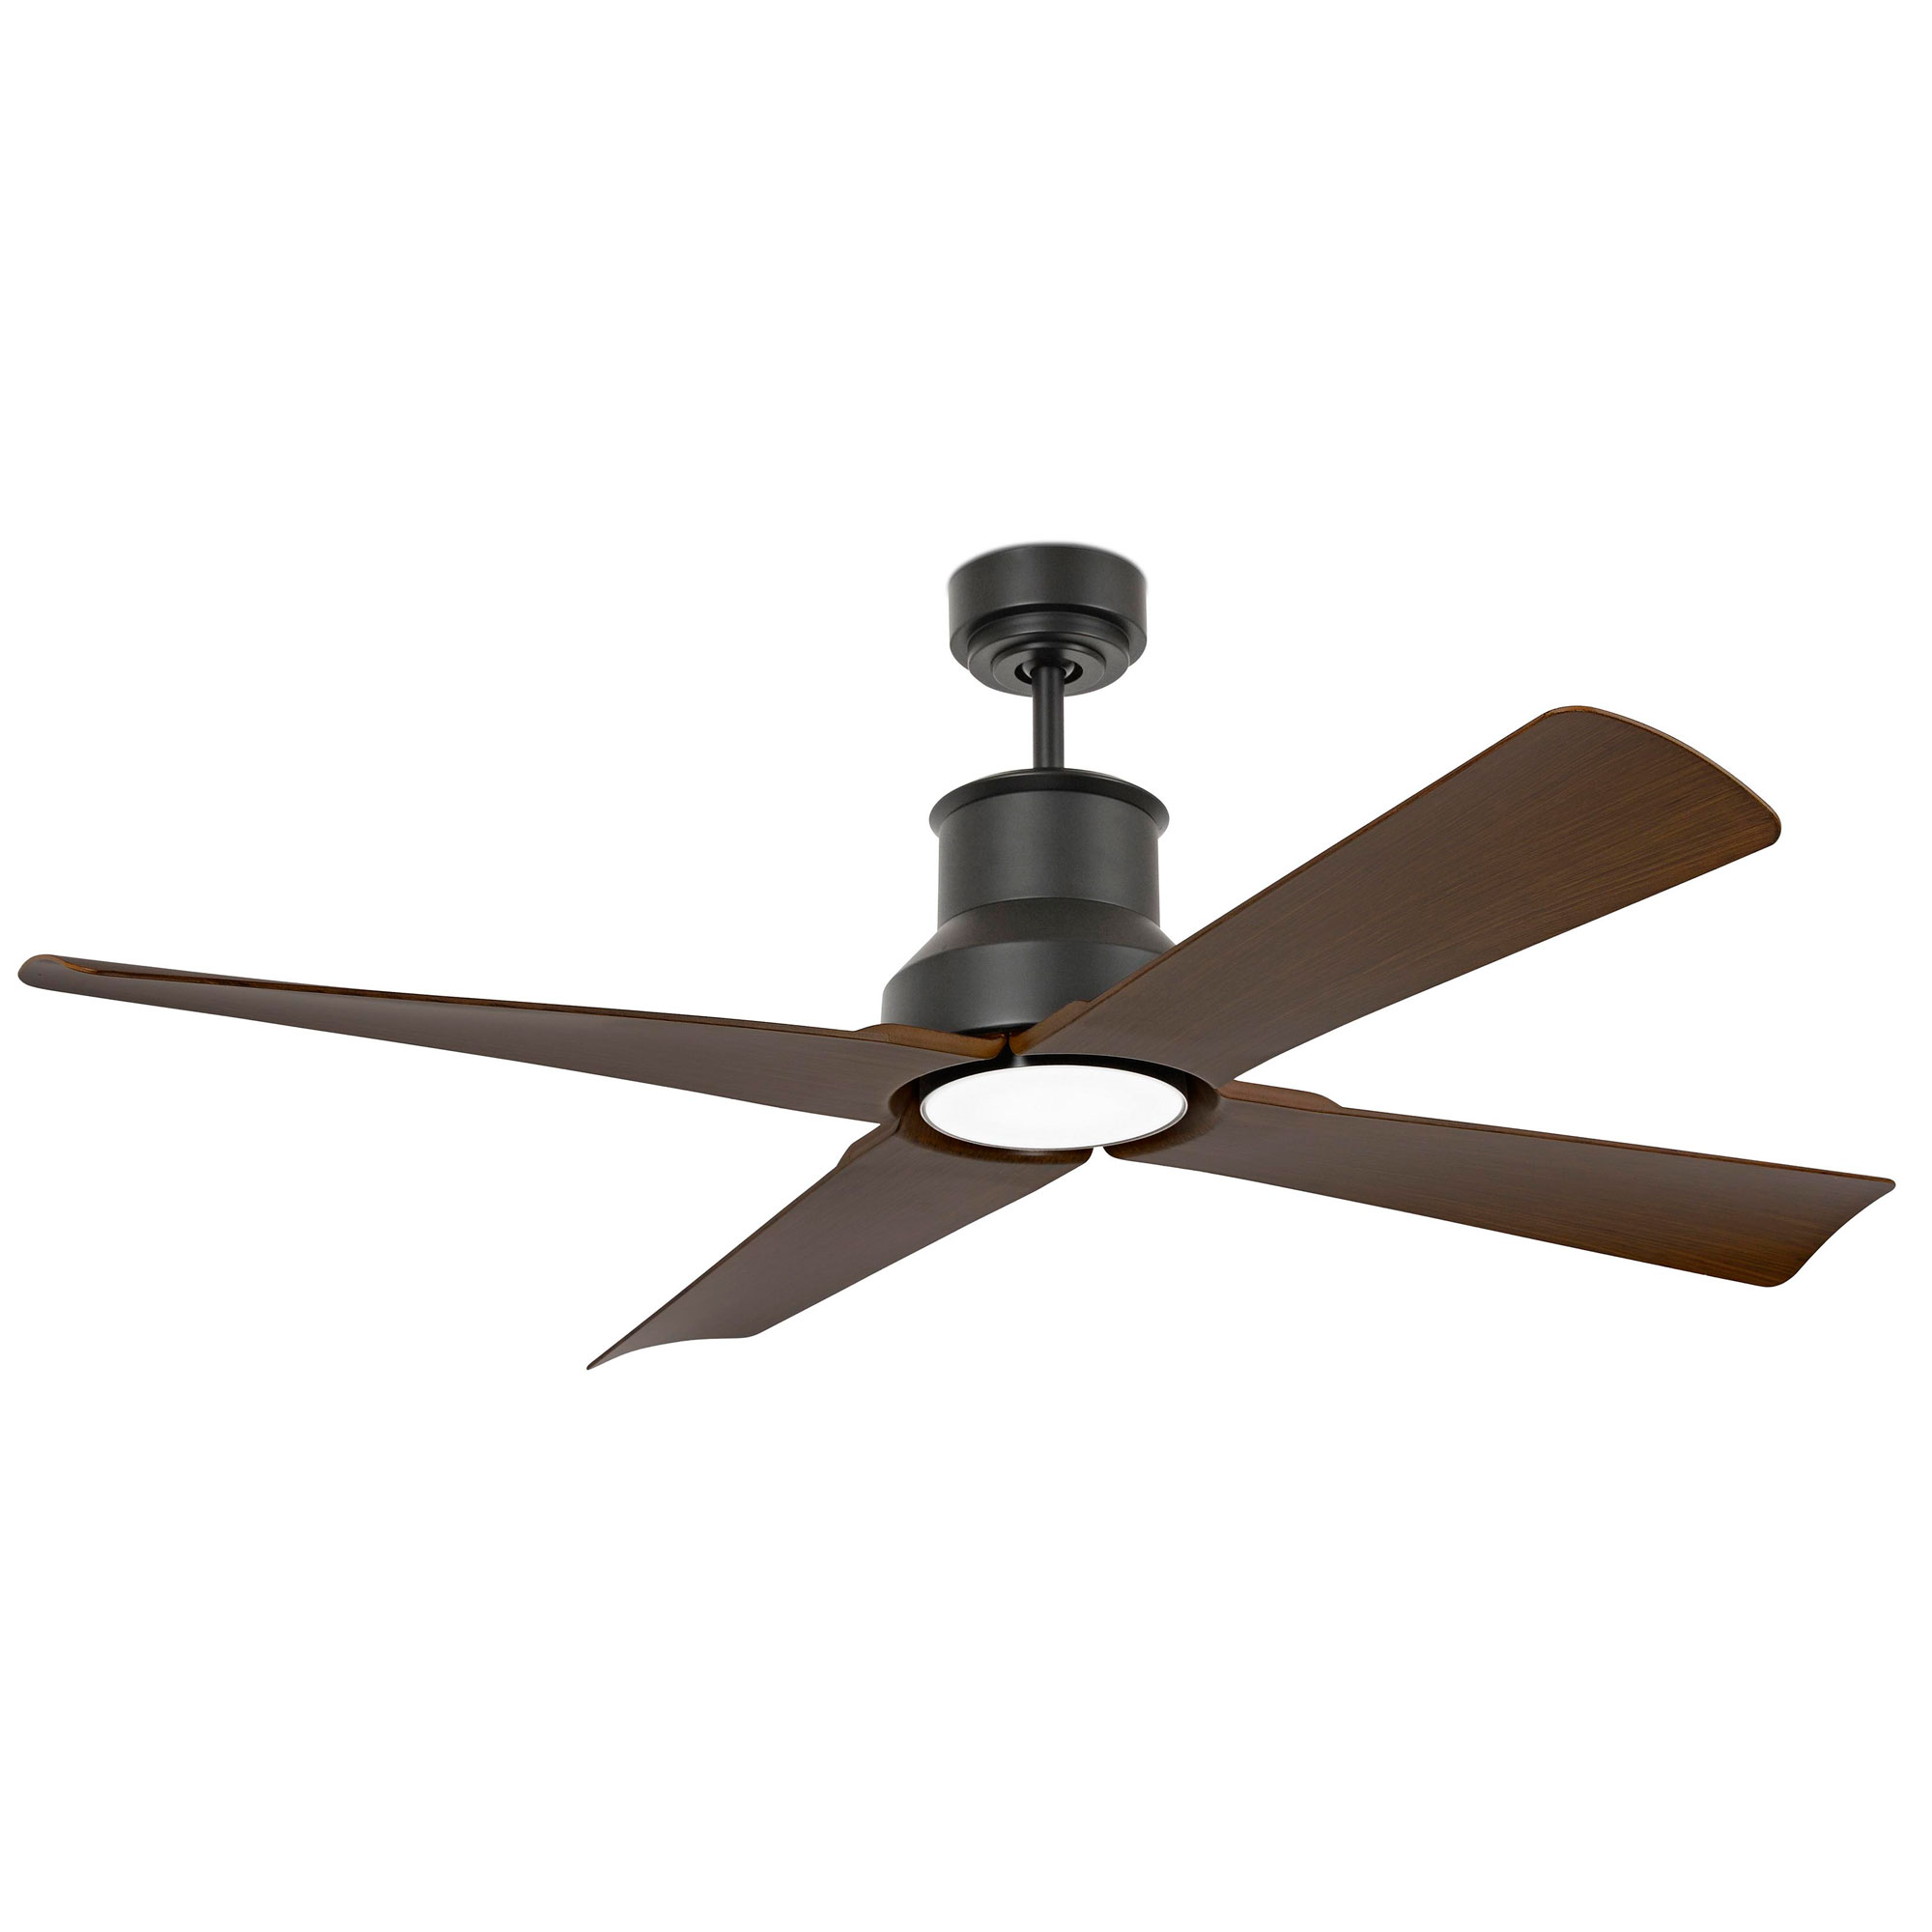 Ceiling Winch Taraba Home Review